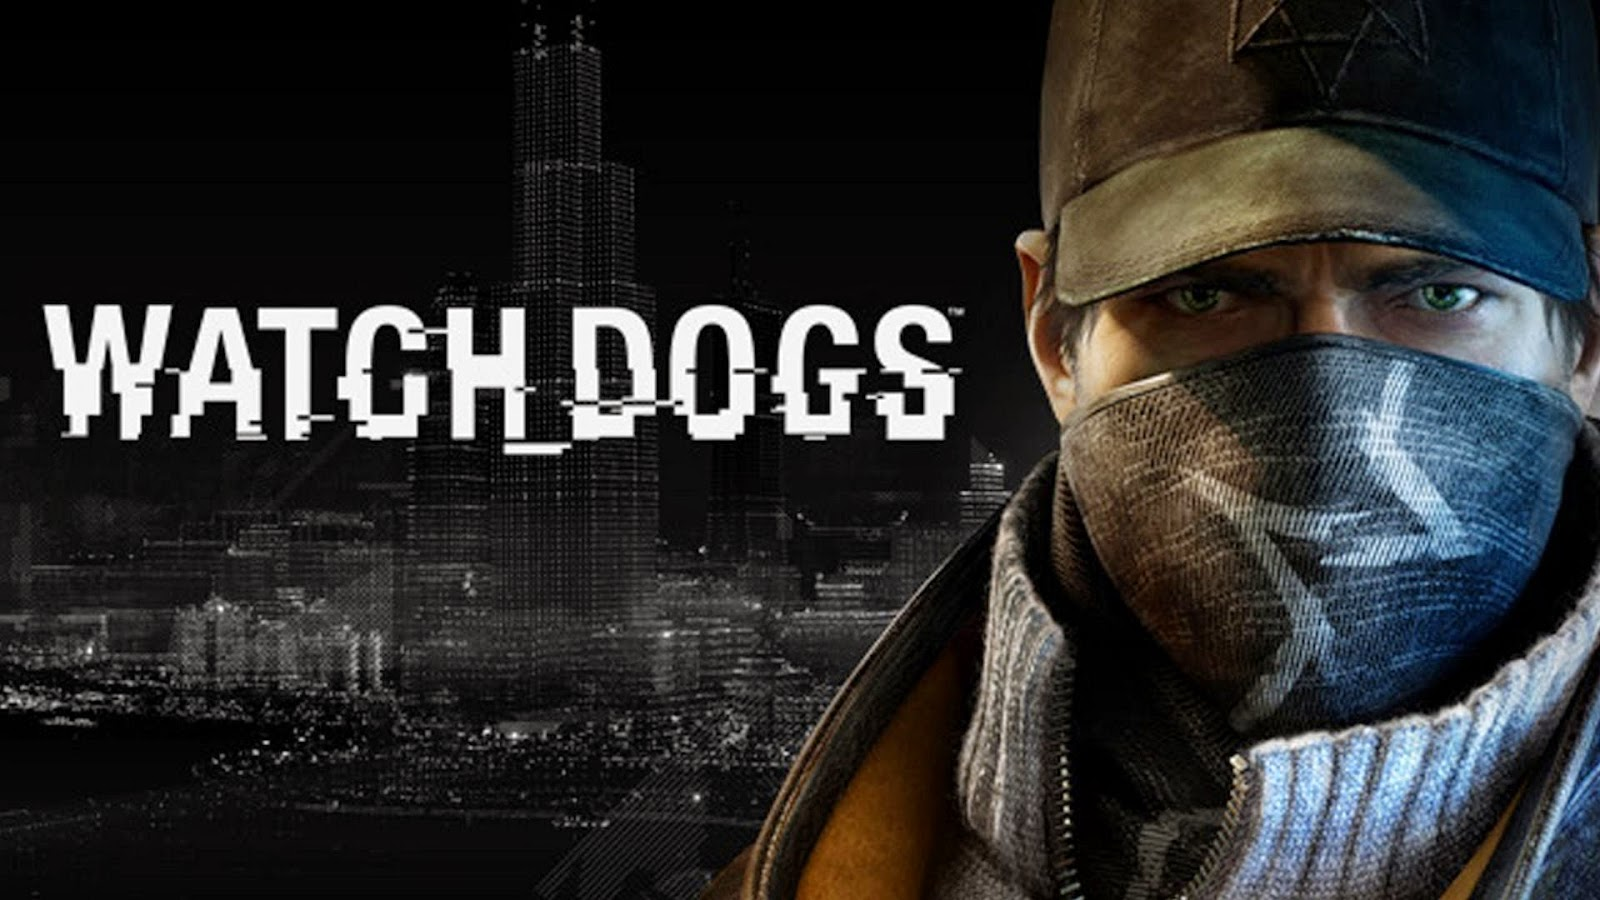 Watch Dogs Lag Fix (works with low-end PCs like mine) | Pro